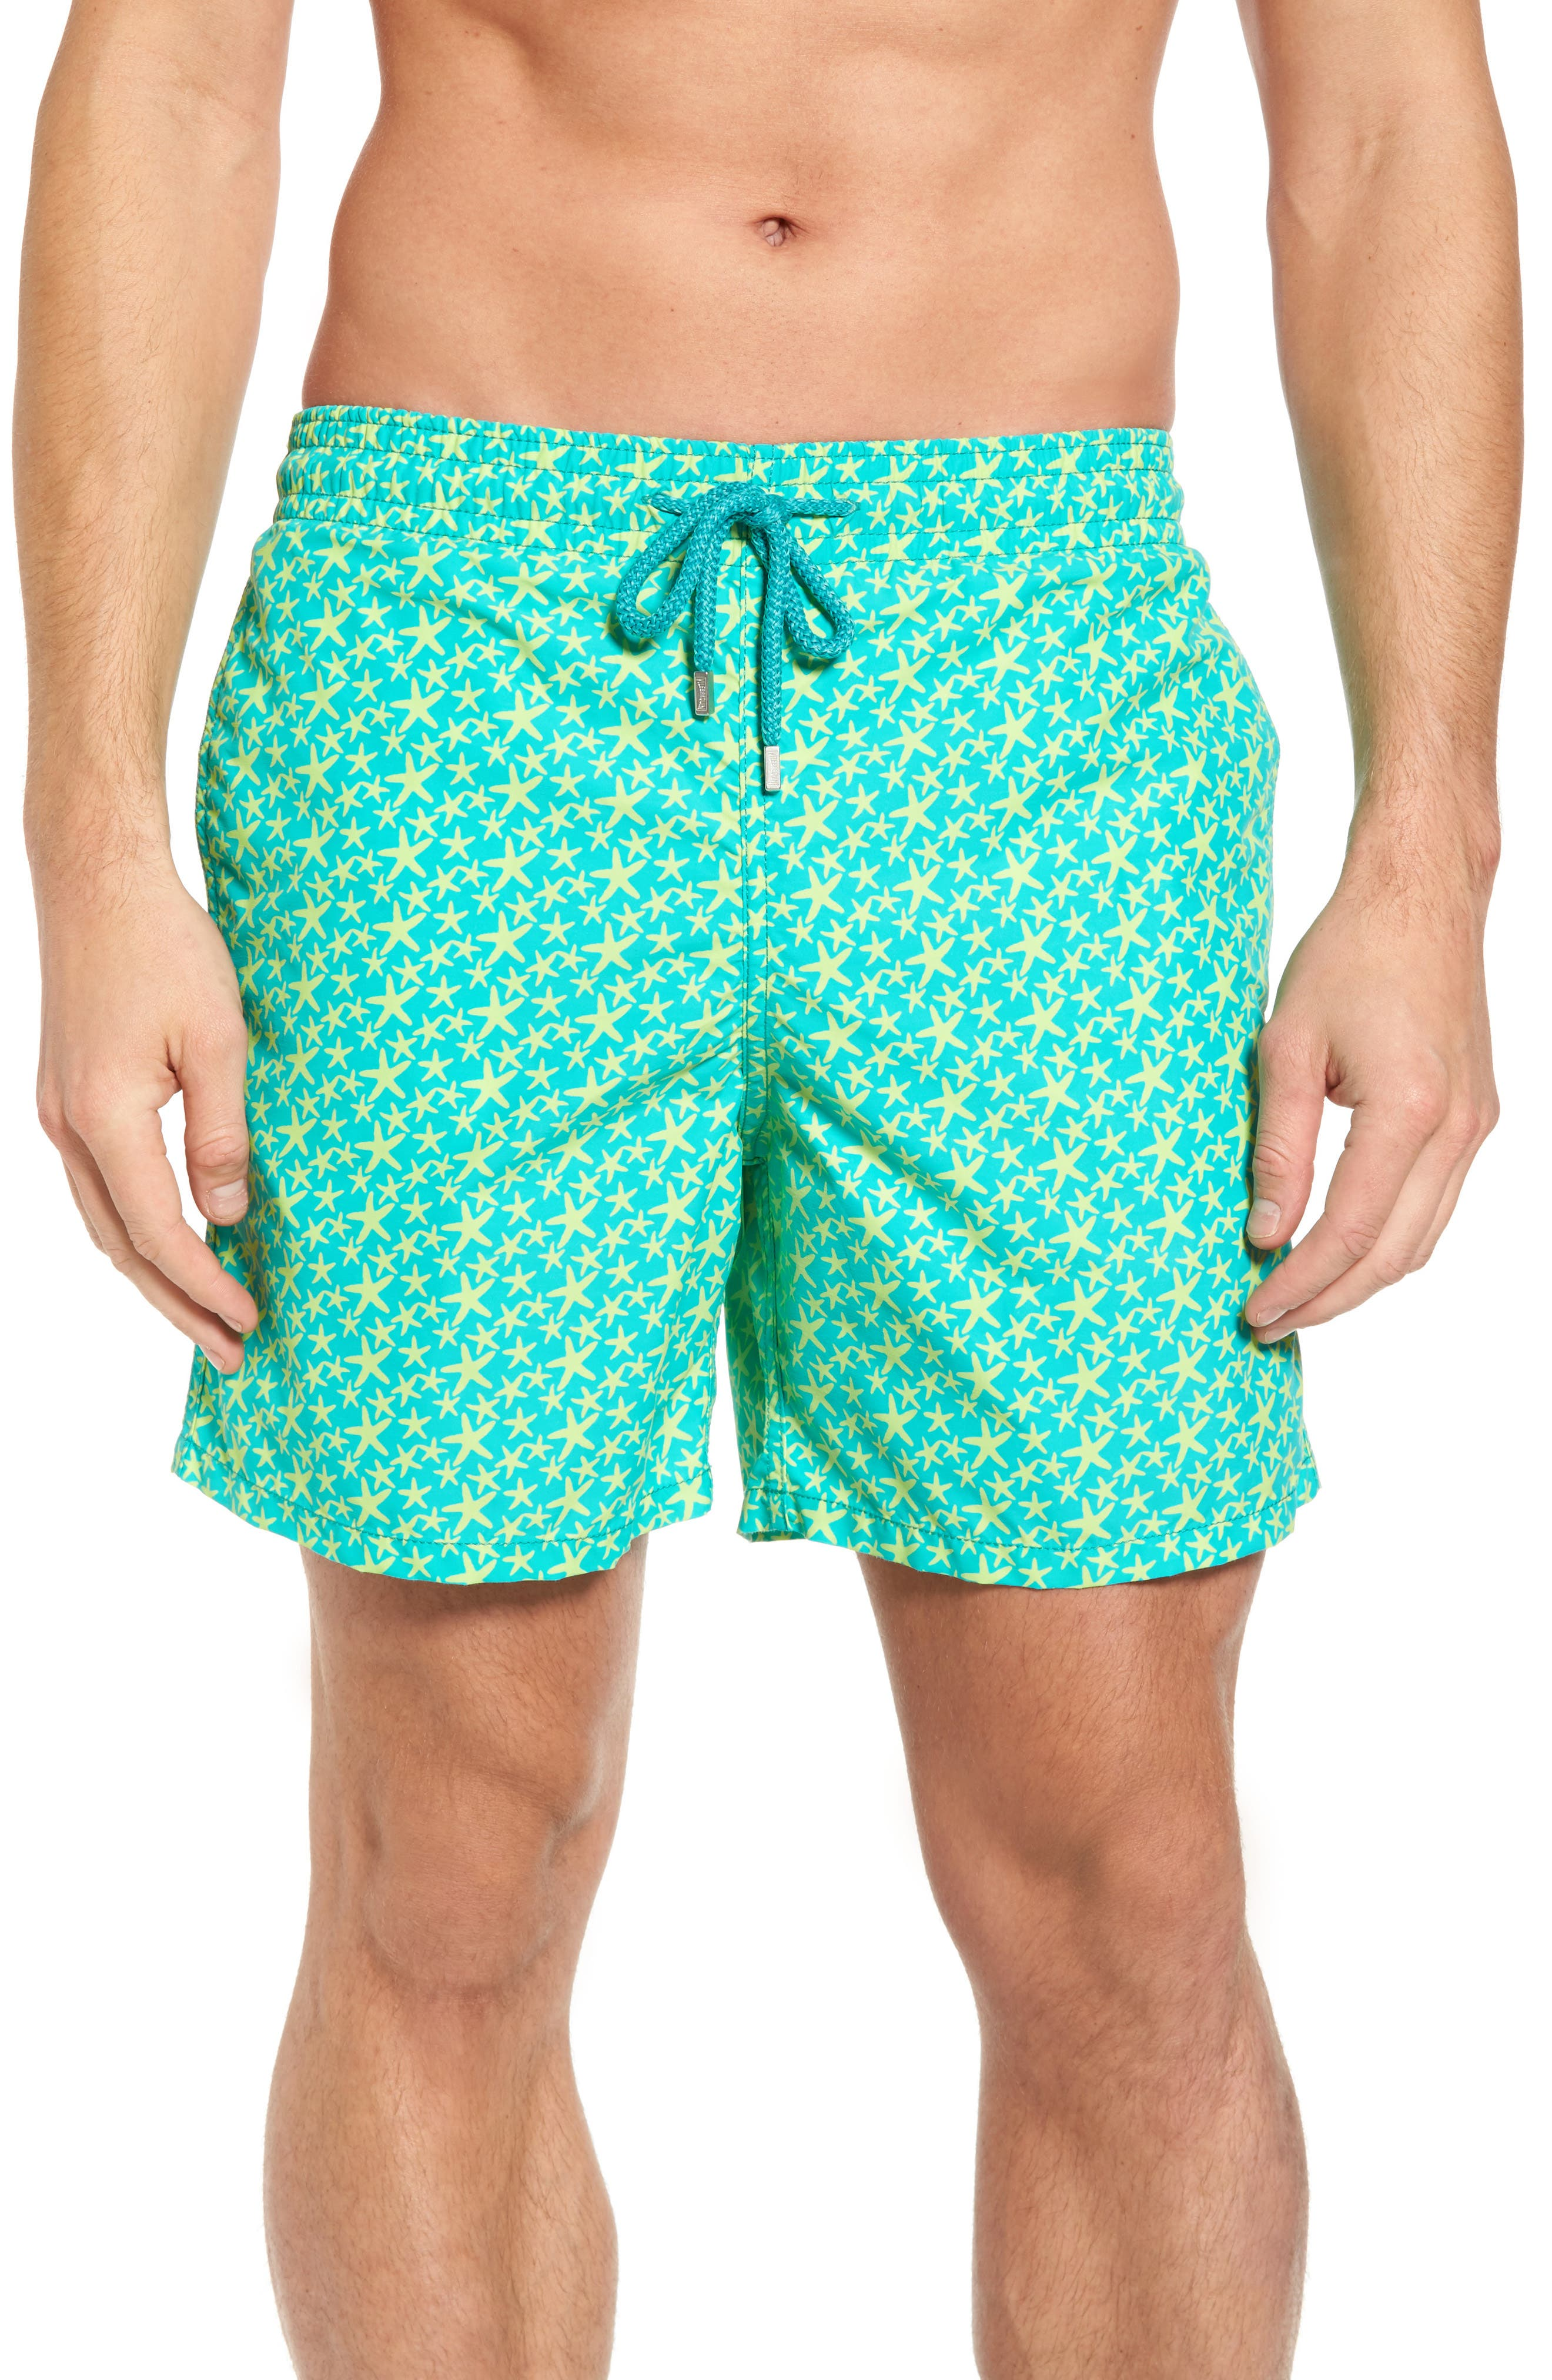 Micro Starlets Swim Trunks,                             Main thumbnail 1, color,                             348